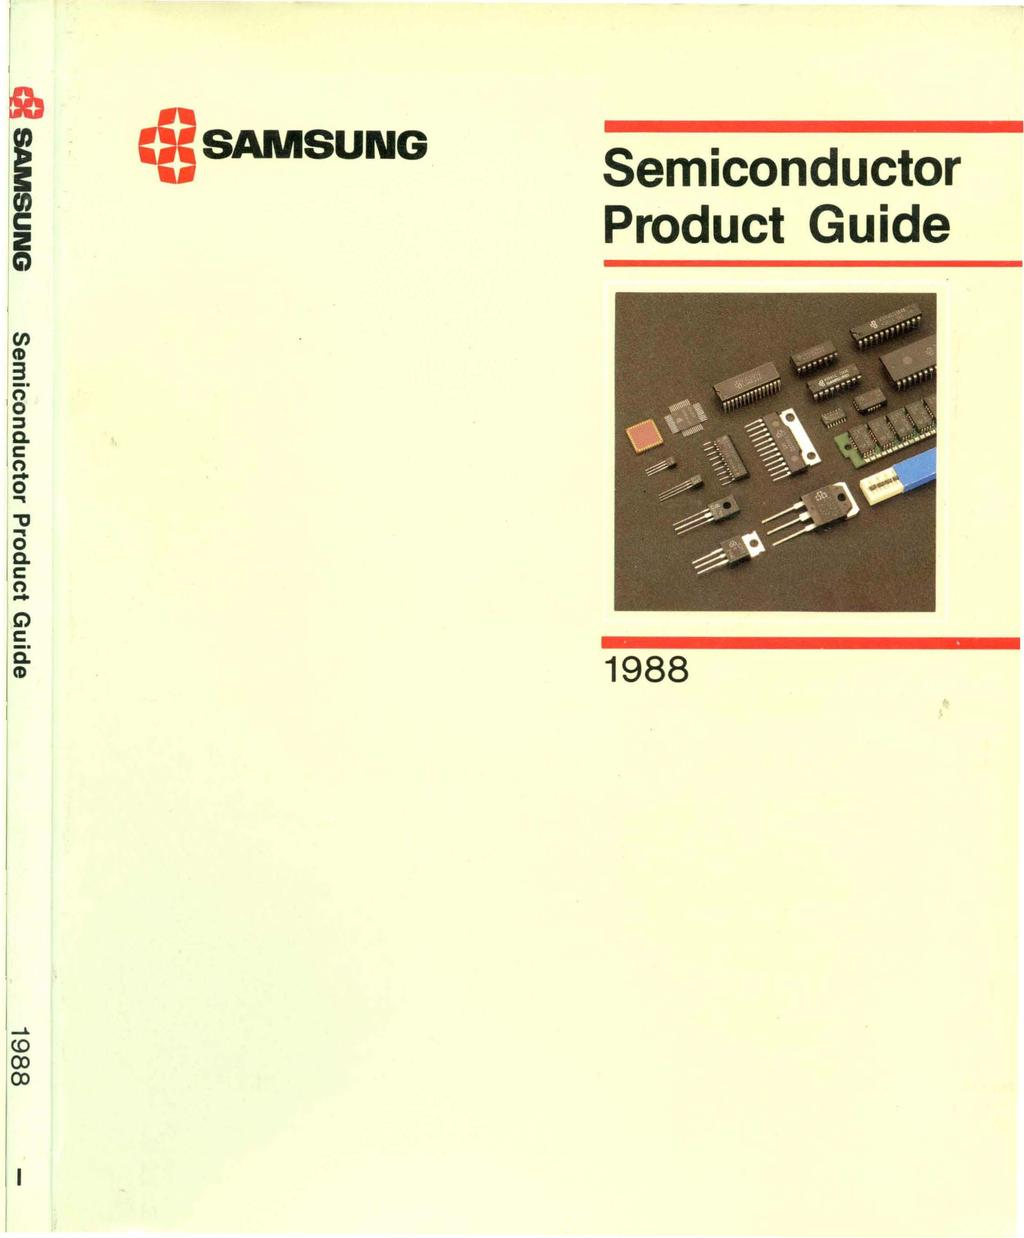 8samsung Semiconductor Product Guide Cd I En O Tj C La3161 Stereo Preamplifier 2 3 N A